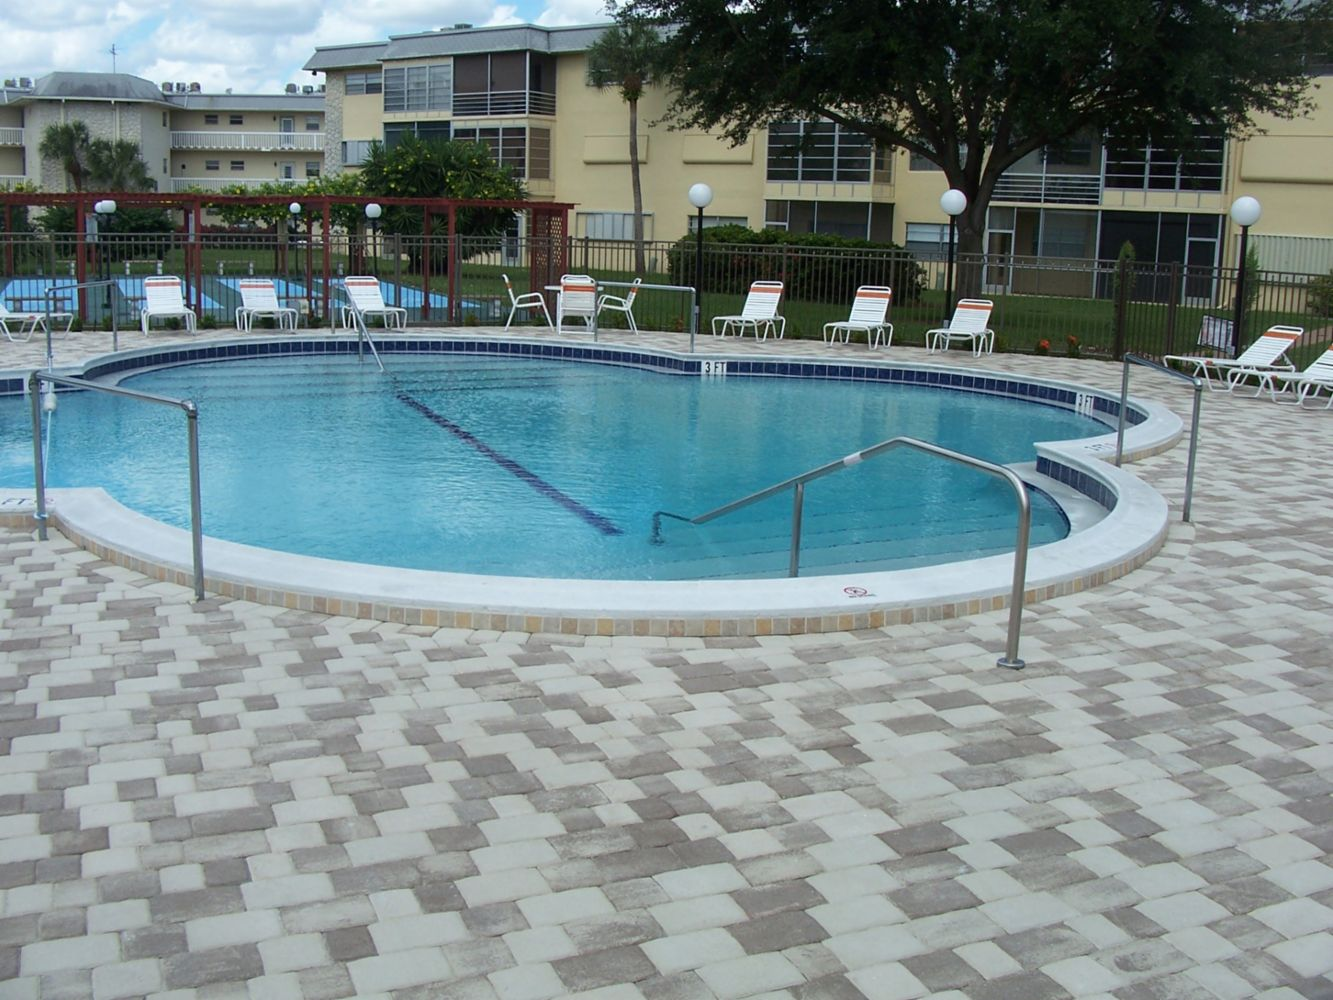 Pool design and construction in fort lauderdale fl for Pool design fort lauderdale